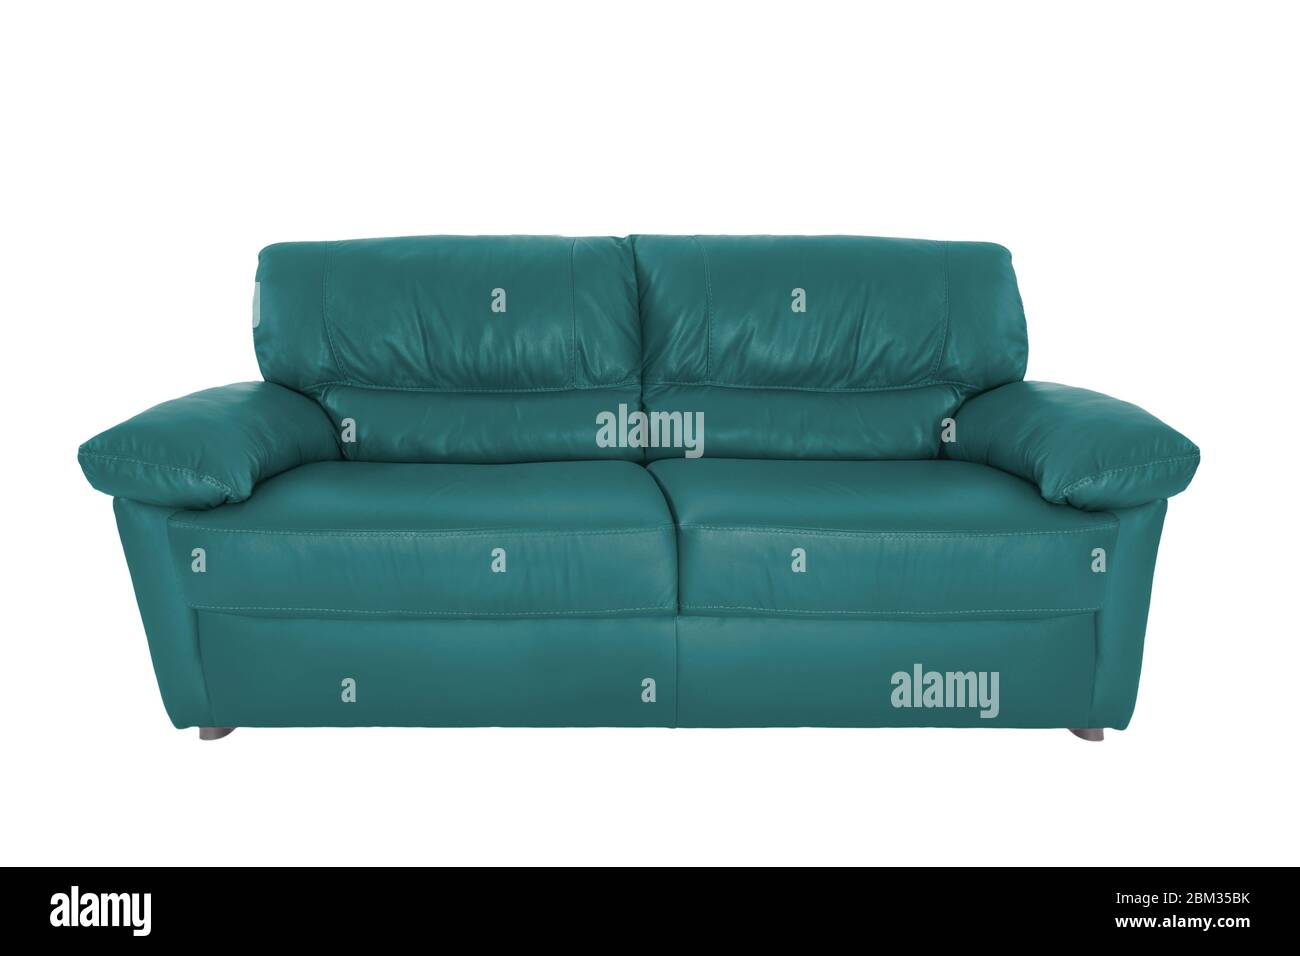 - Cyan Leather Sofa High Resolution Stock Photography And Images - Alamy